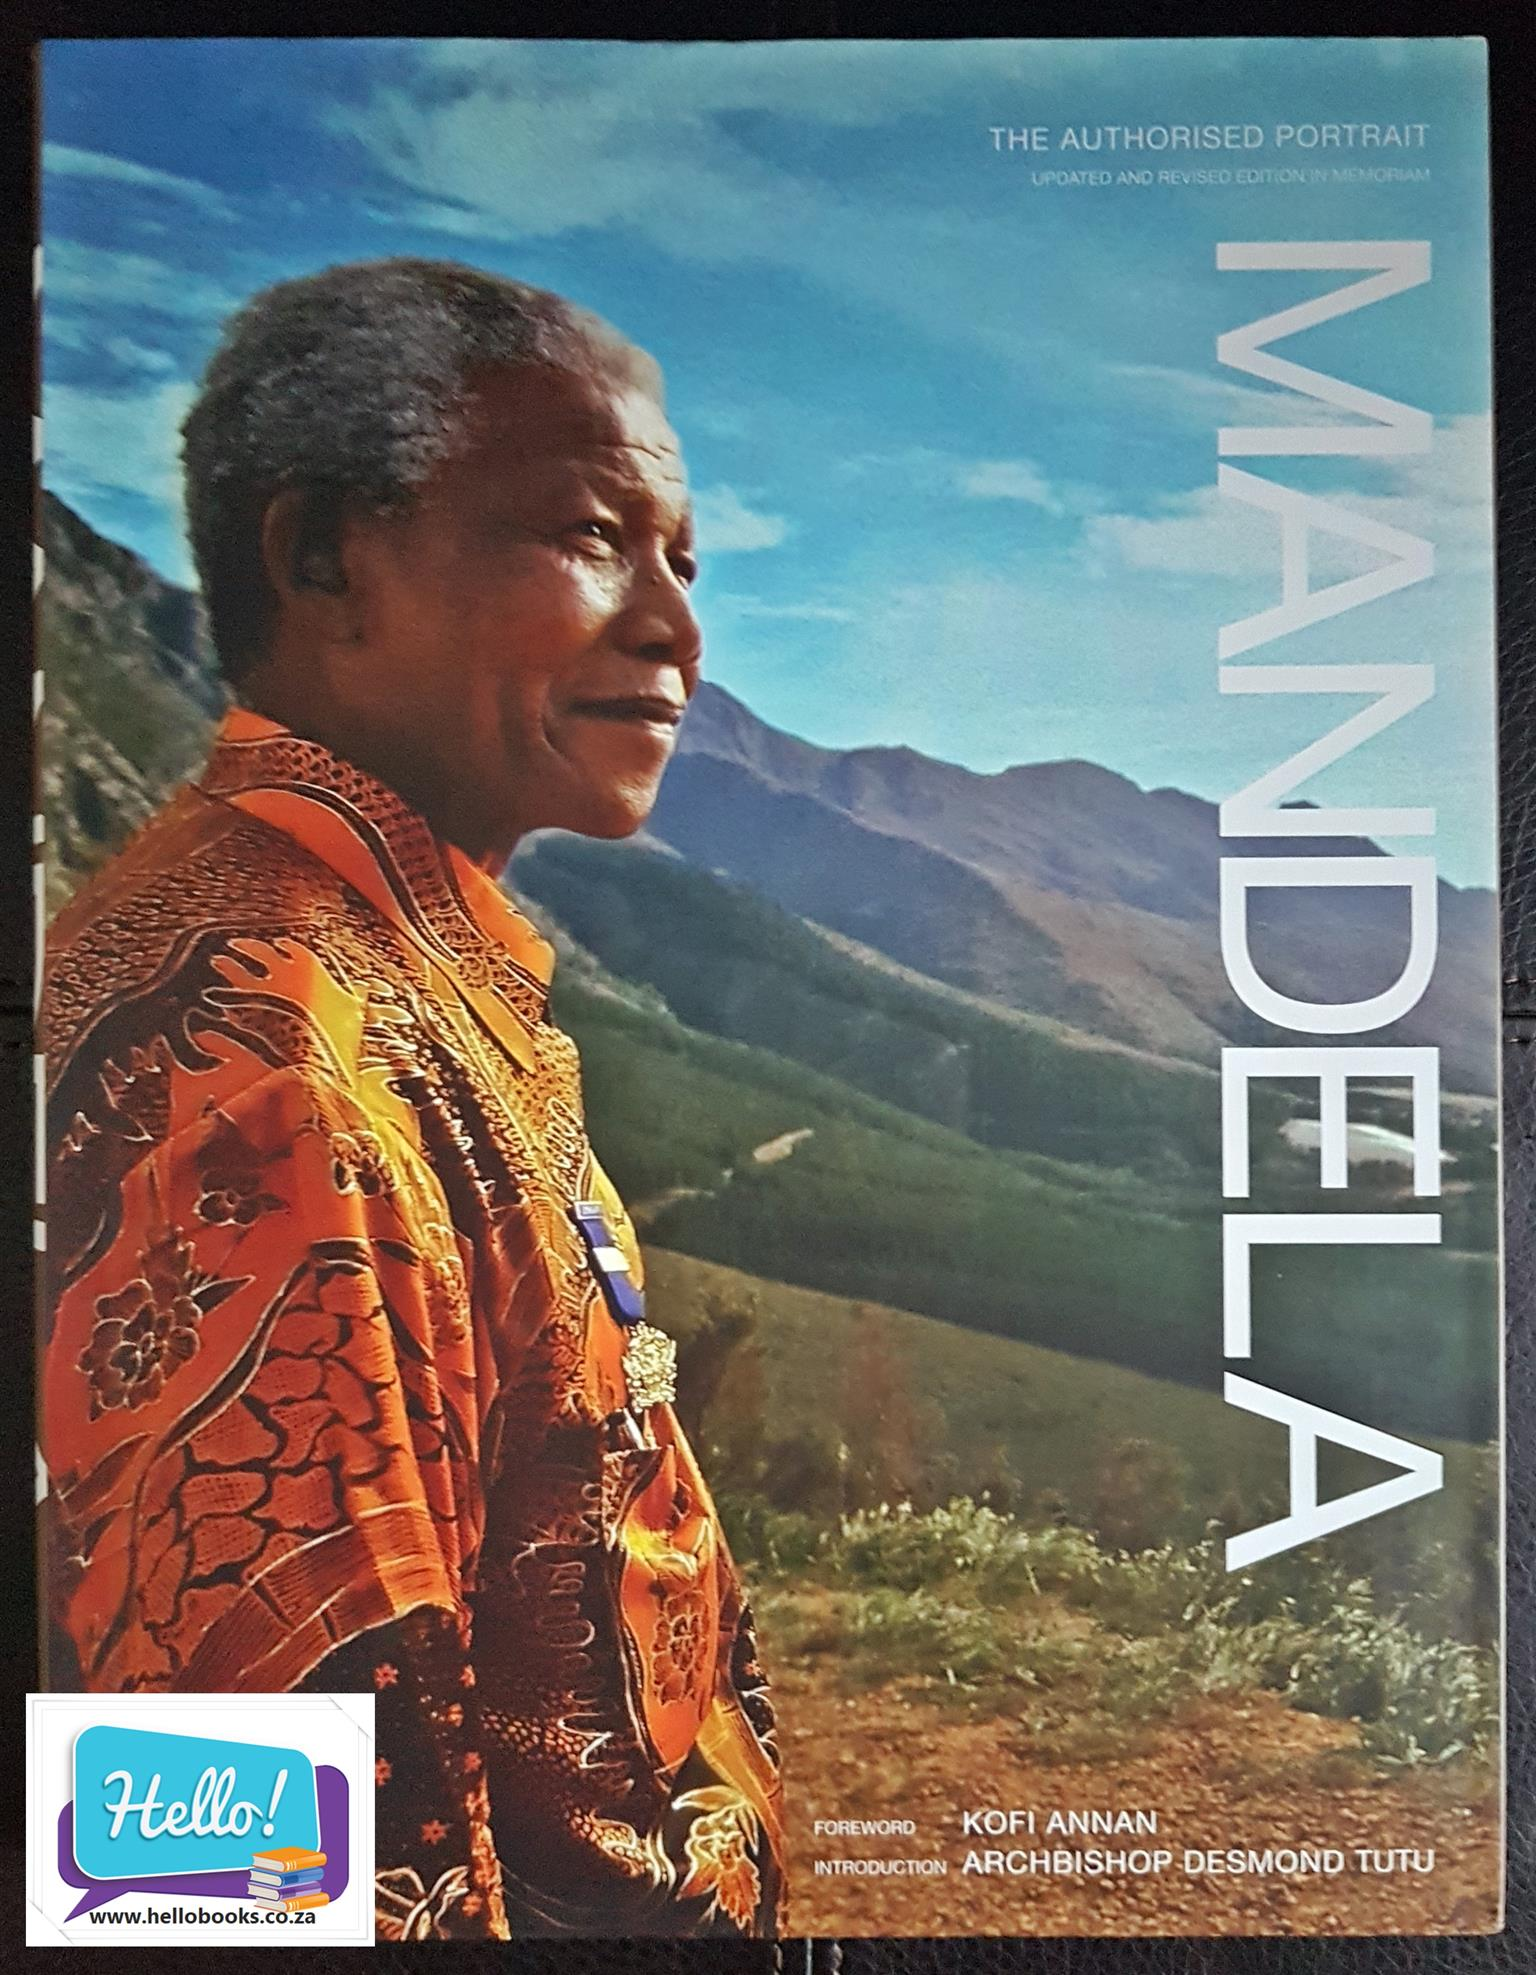 Mandela - The Authorised Portrait